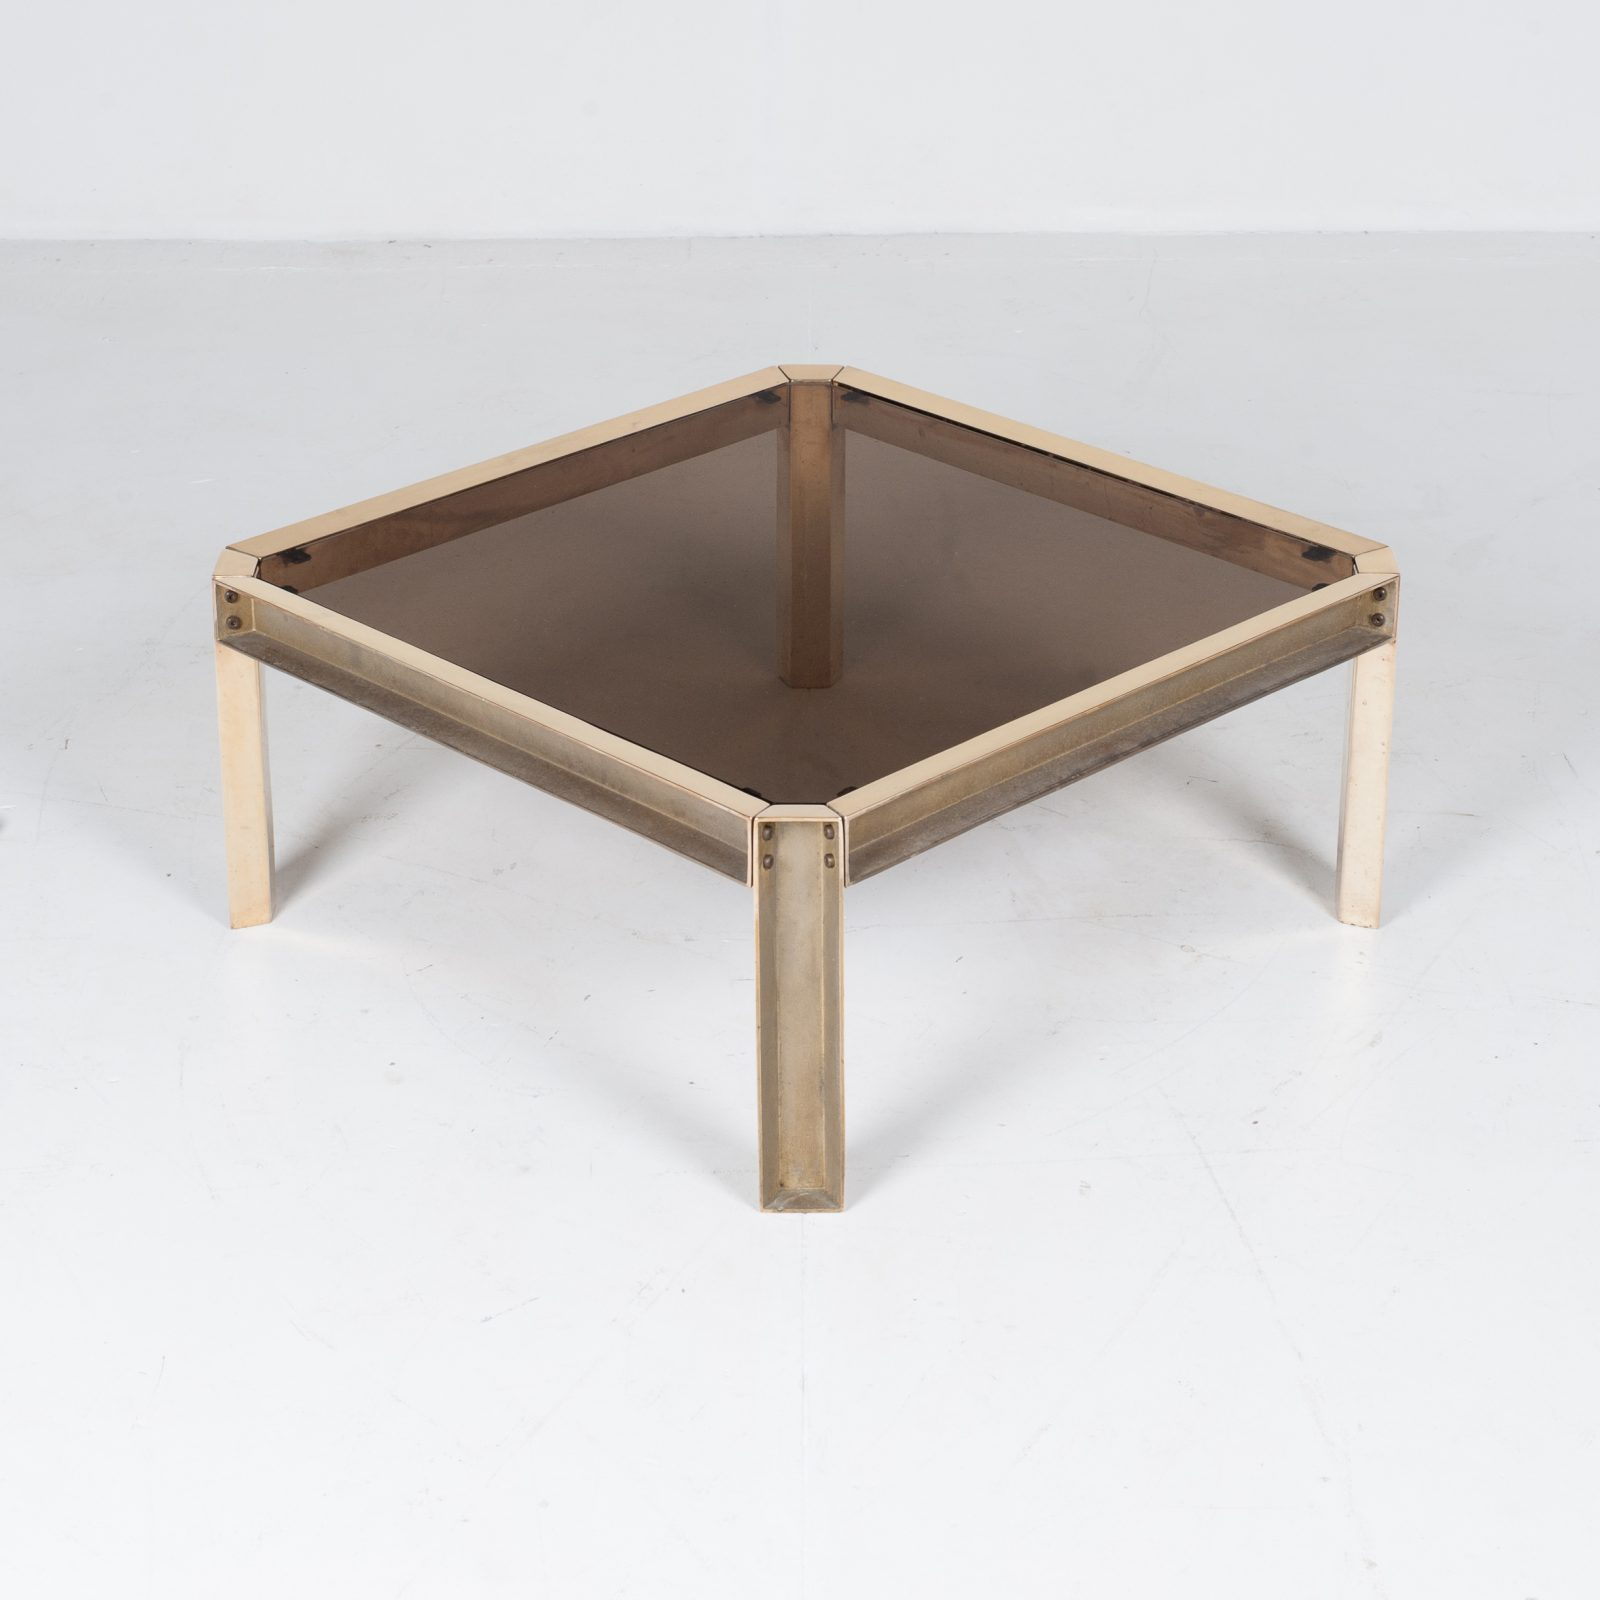 Side Table By Peter Ghyczy With Hollow Cast Brass Frame And Smoked Glass Top, 1970s, The Netherlands 28